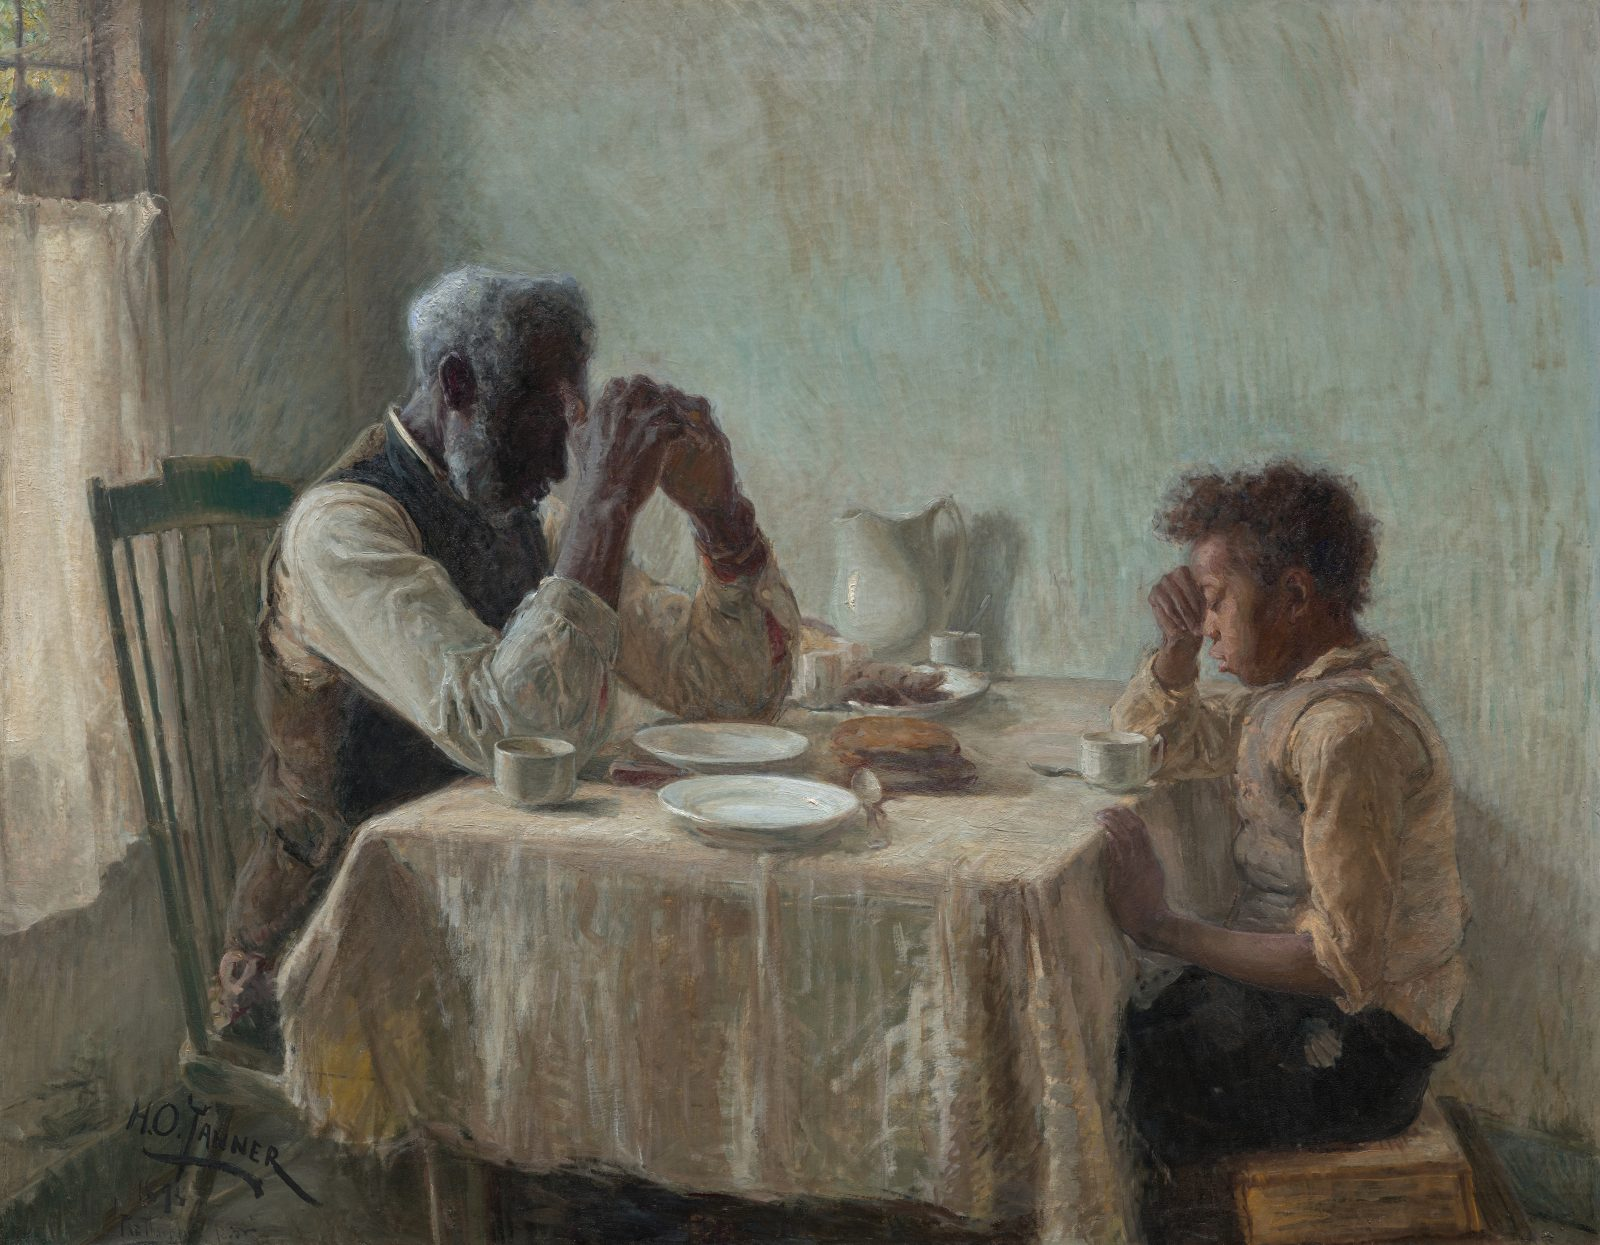 Henry Ossawa Tanner, The Thankful Poor (1894), after treatment. Courtesy of Art Bridges.